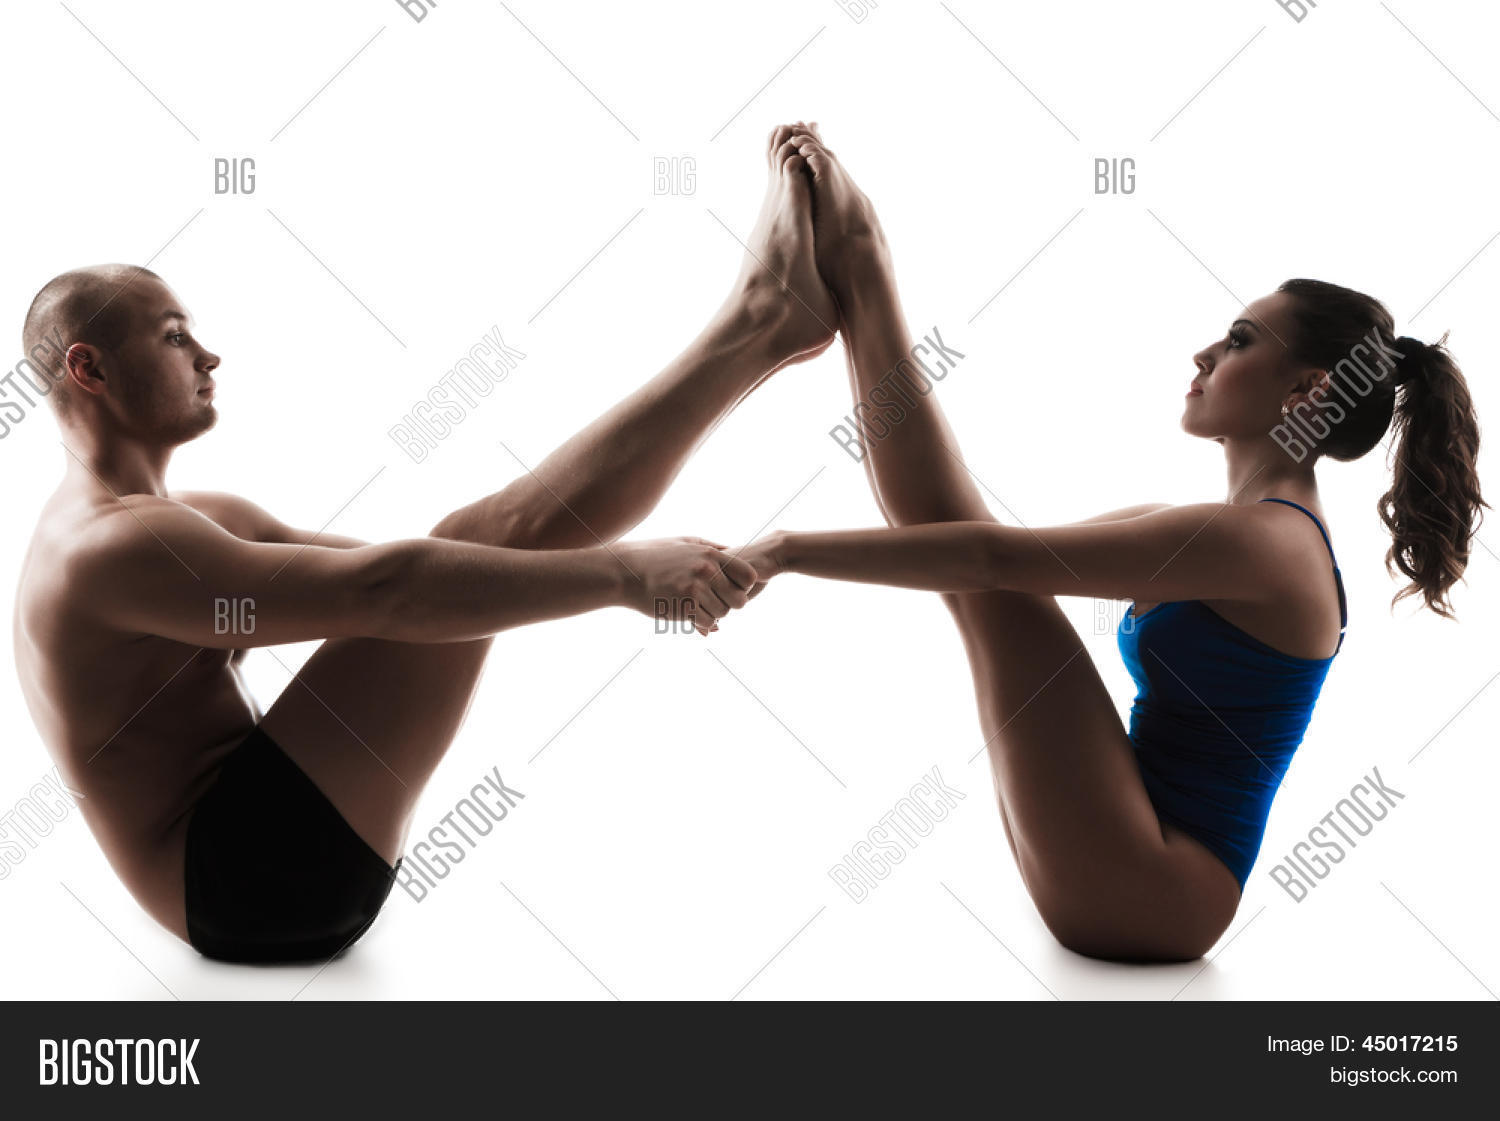 Poses Yoga Challenge Two Person